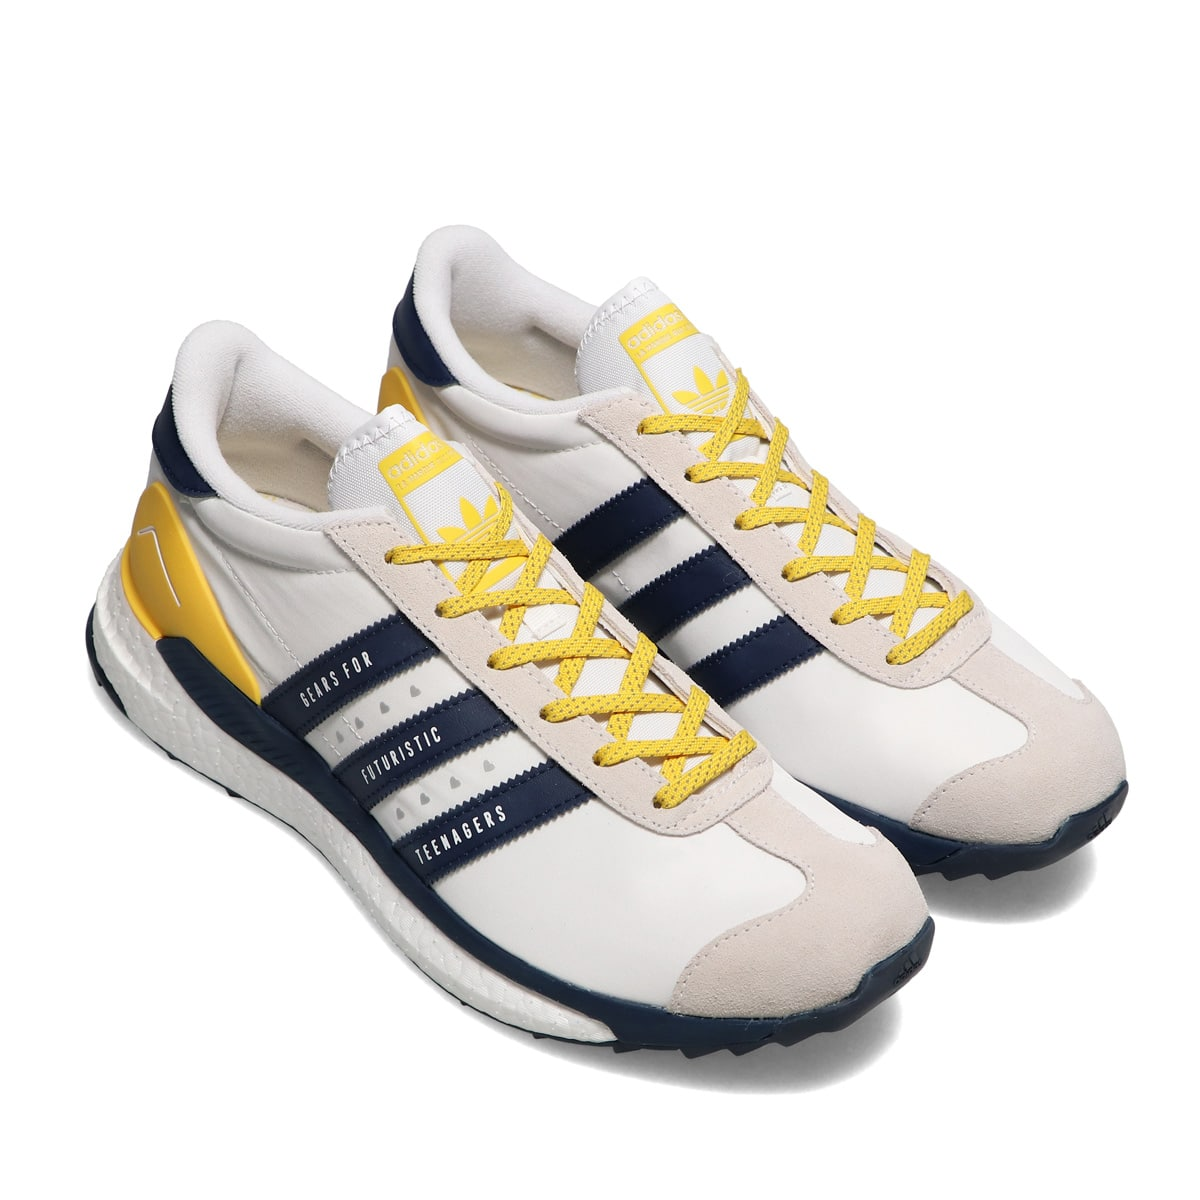 adidas Consortium COUNTRY HM FTWR WHITE/HAZY YELLOW/COLLEGIATE NAVY 21SS-S_photo_large